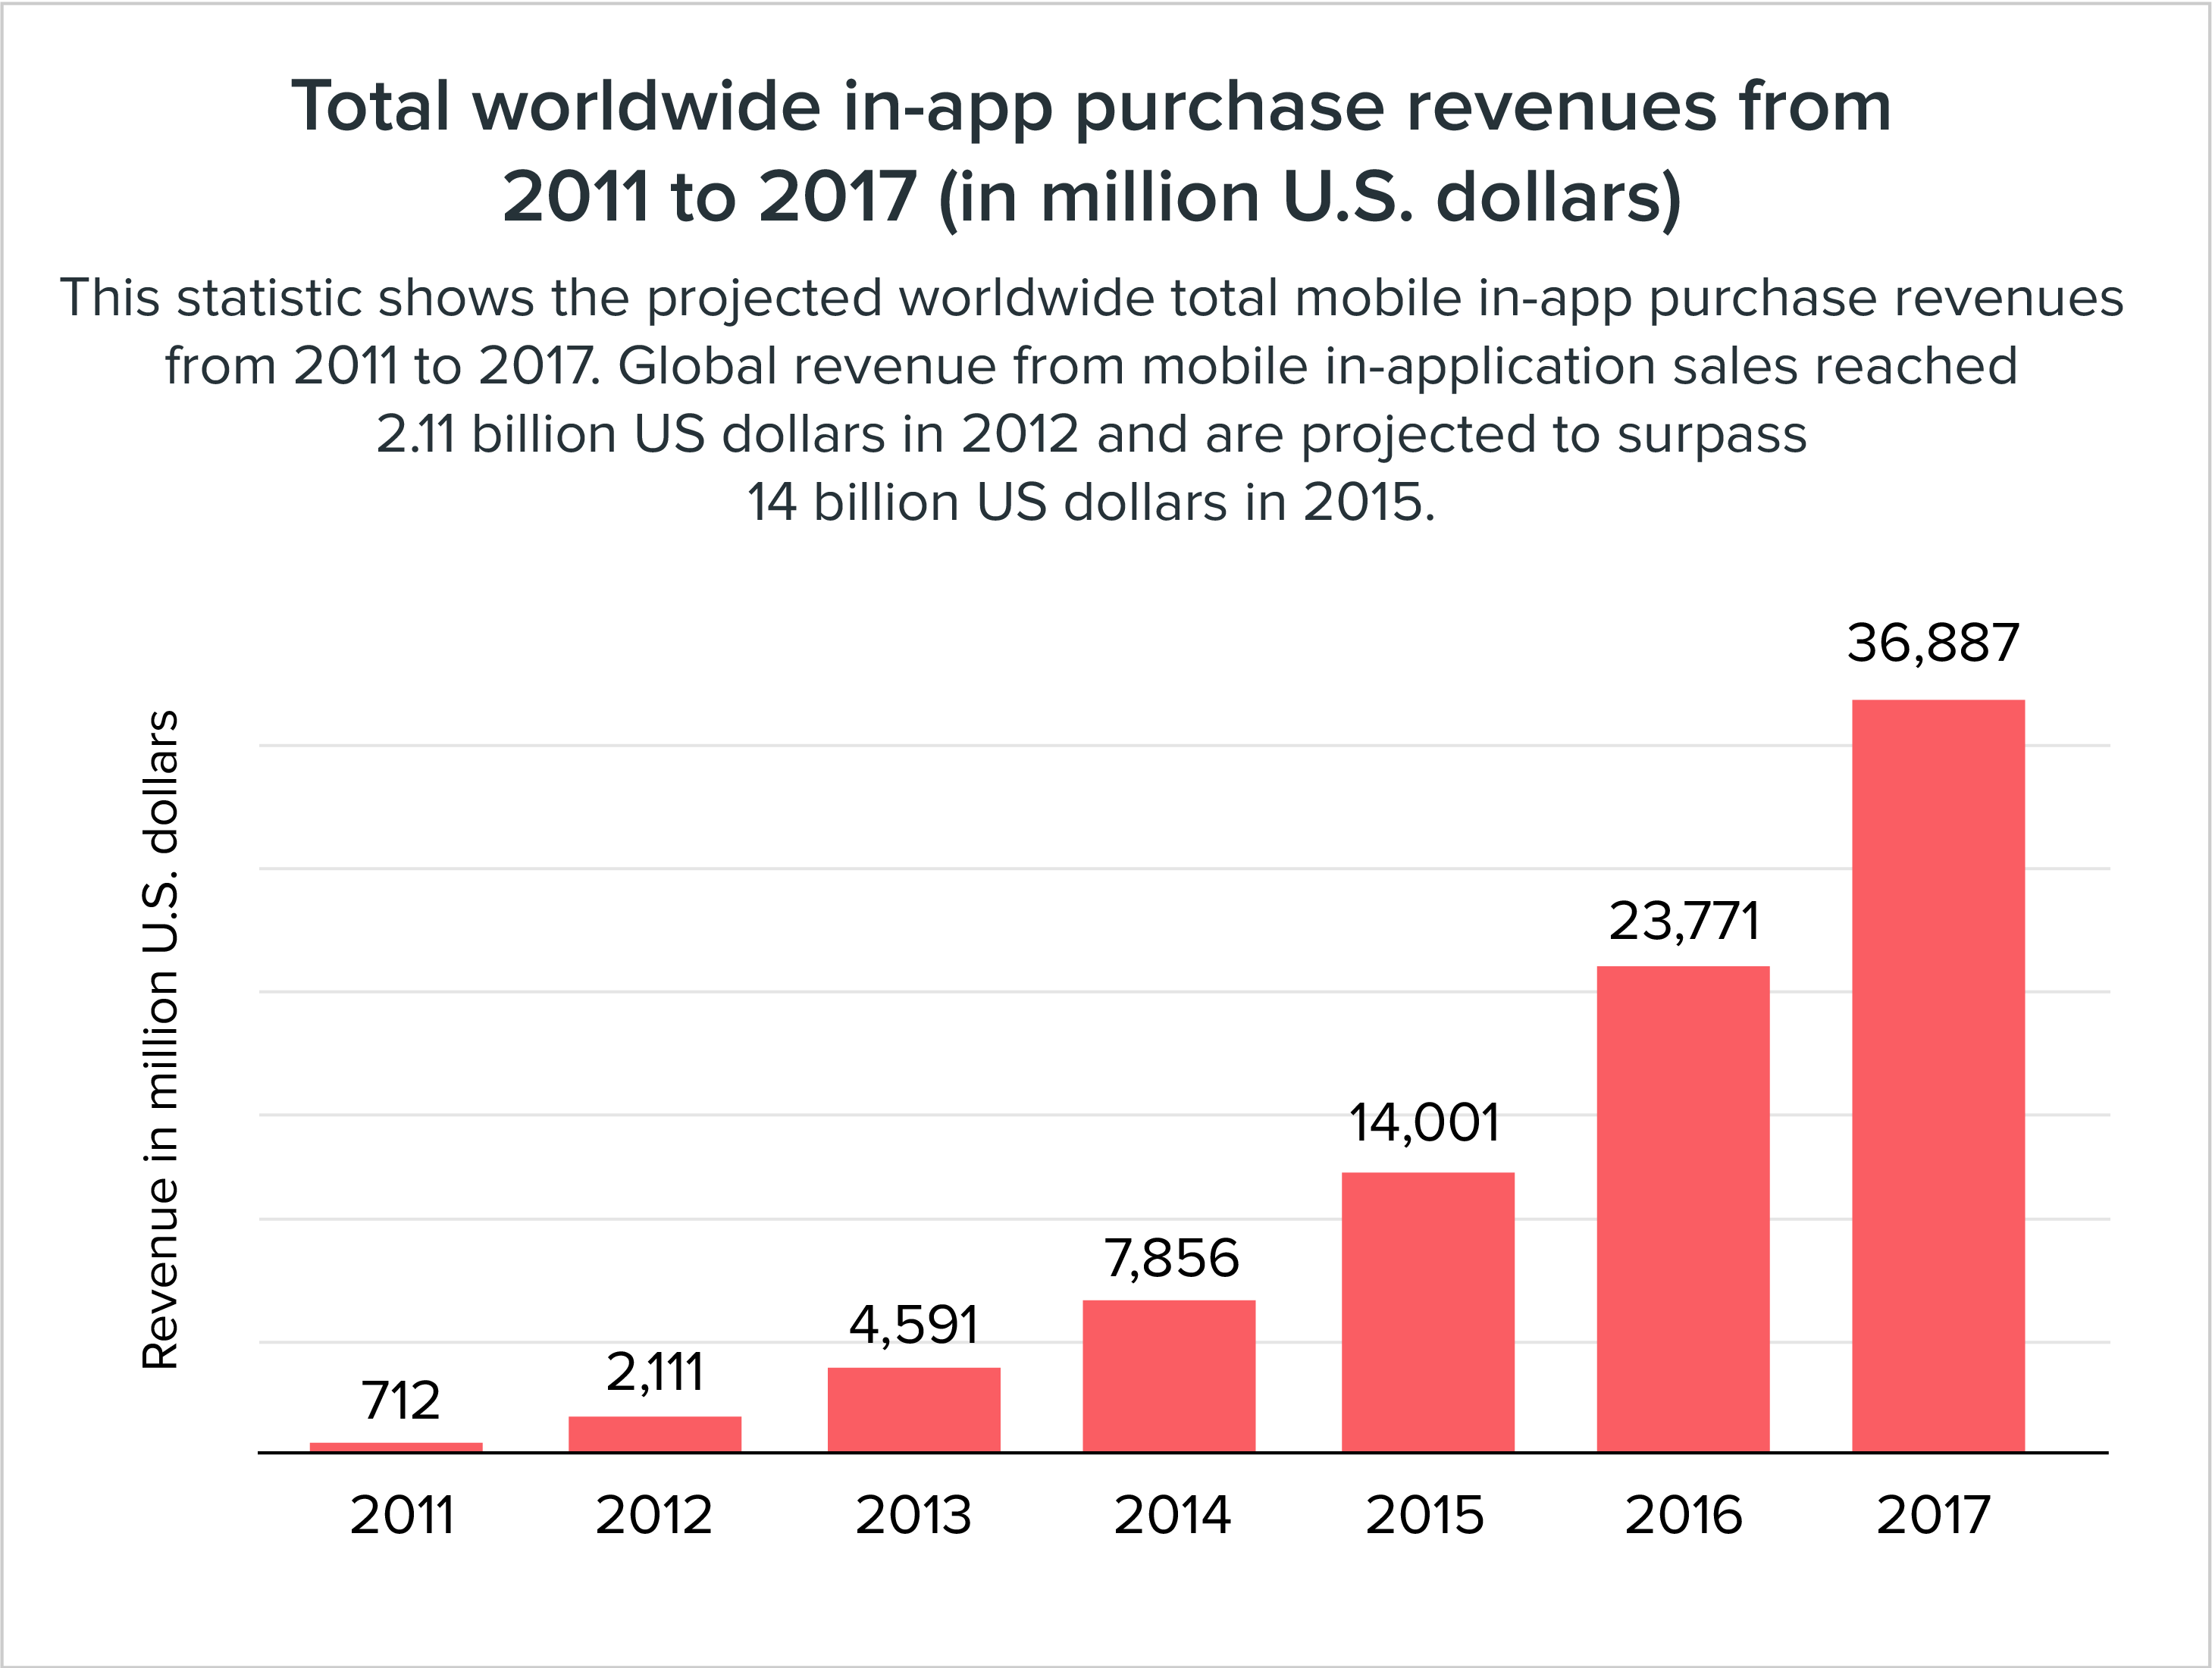 Total worldwide in-app purchase revenue from 2011 to 2017